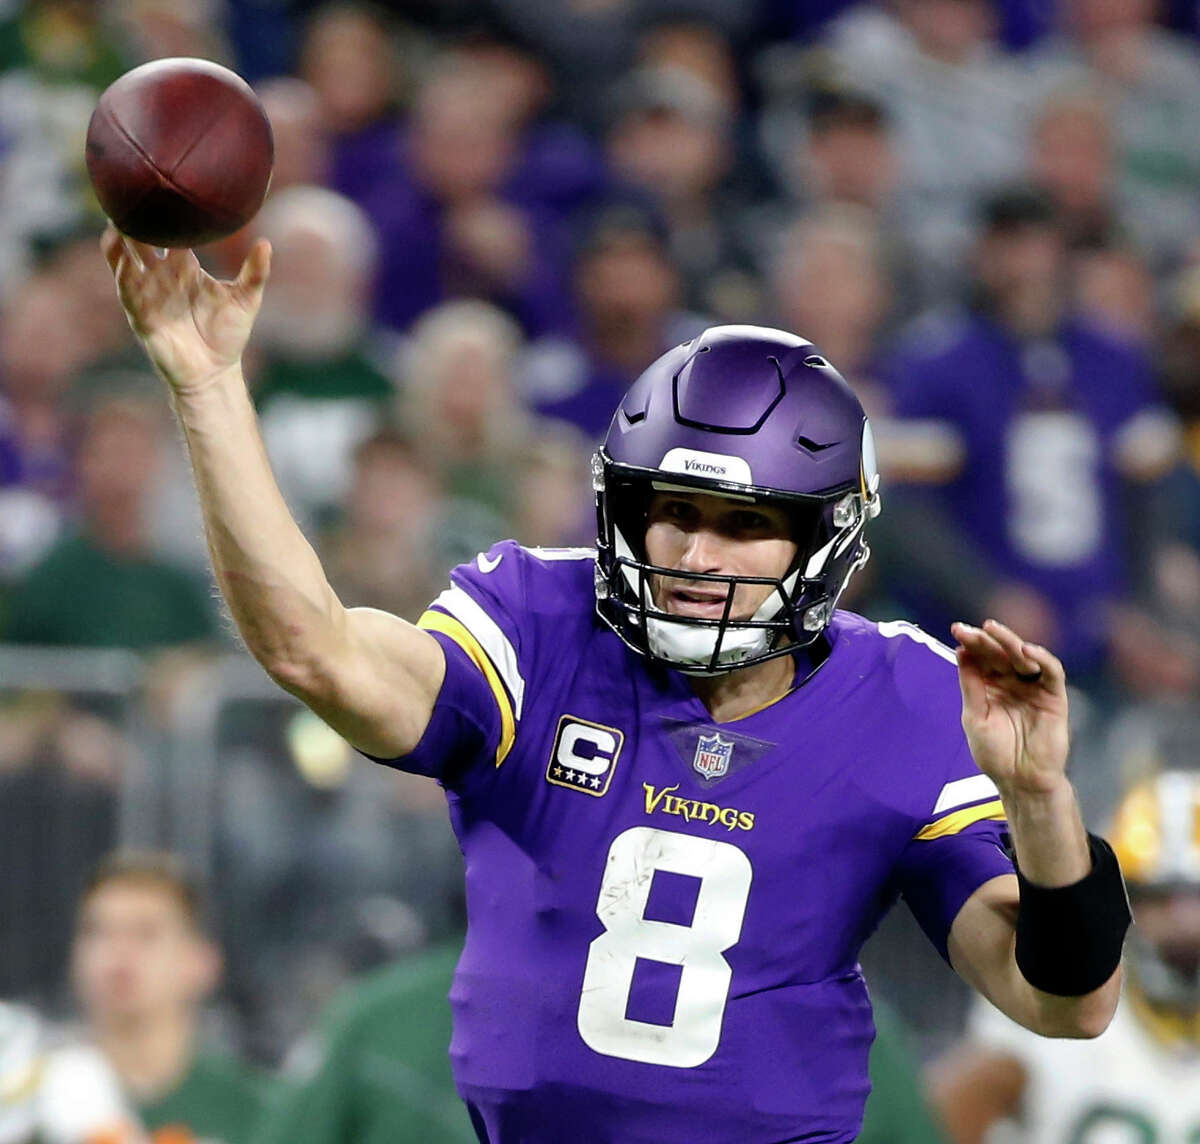 How is Kirk Cousins different in Minnesota's system this season as opposed to be with Washington last year? Carroll: